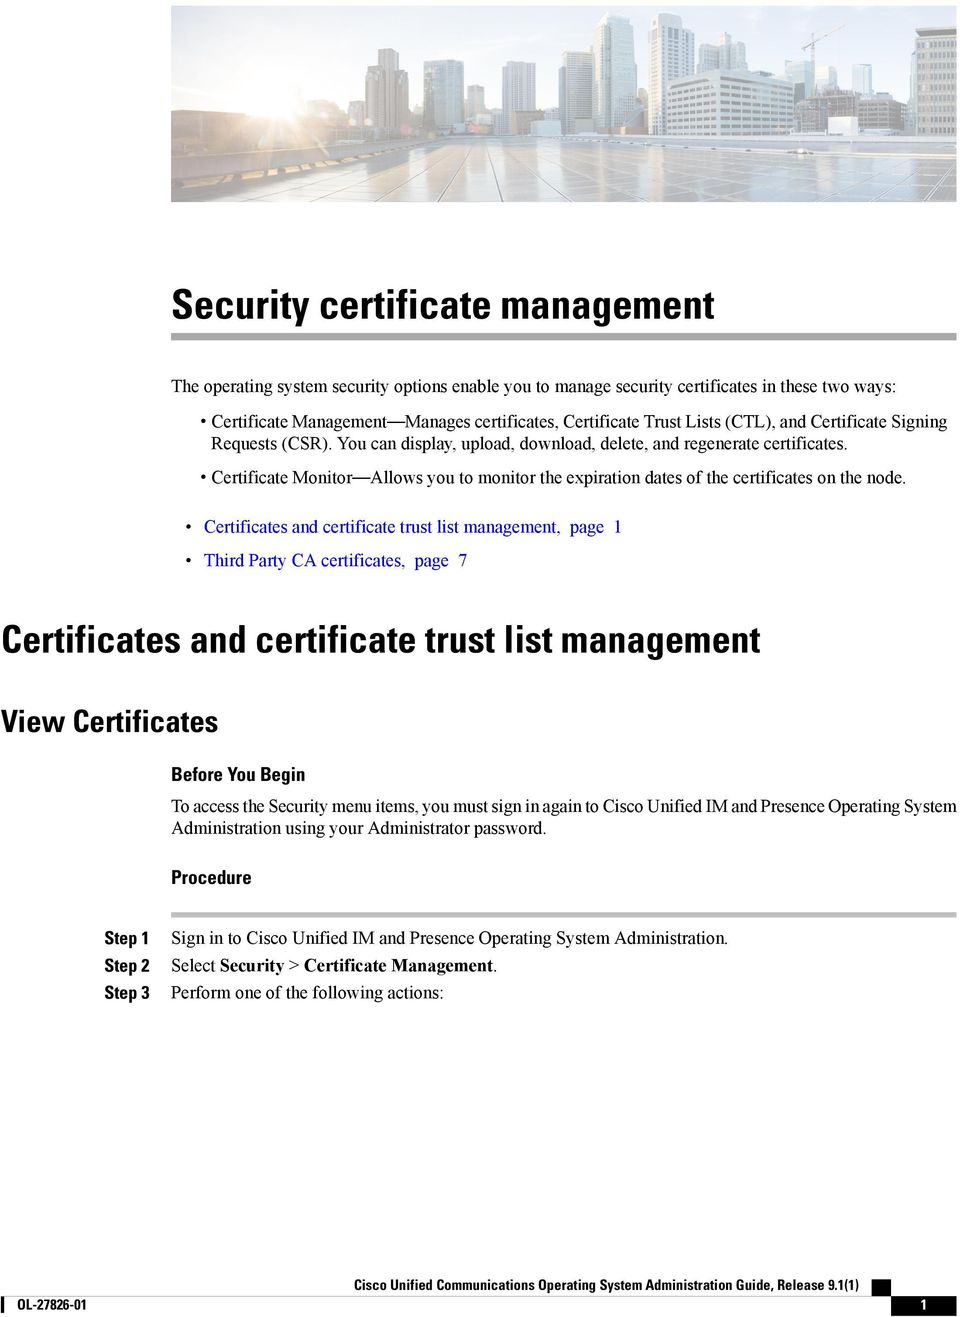 Security Certificate Management Pdf